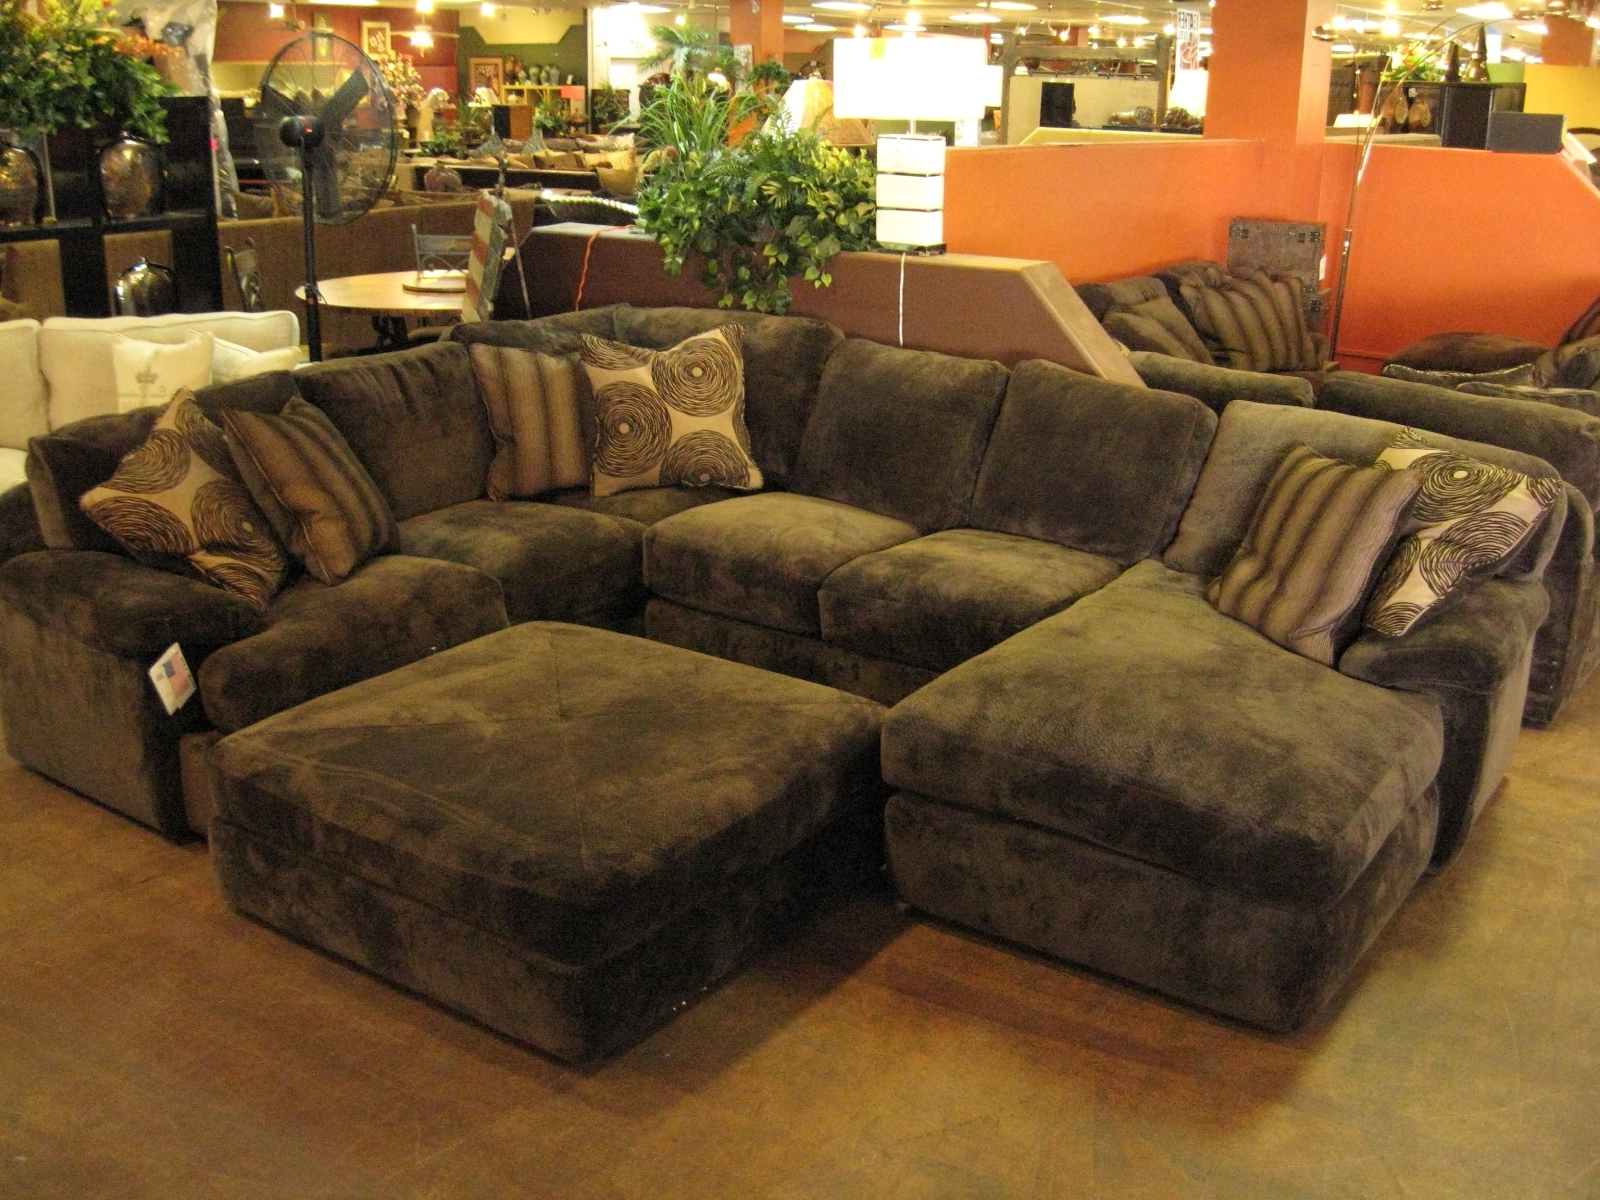 Trendy Sectional Couches With Chaise In Black Velvet Fabric Sectional Sleeper Sofa With Chaise Lounge And (View 11 of 15)